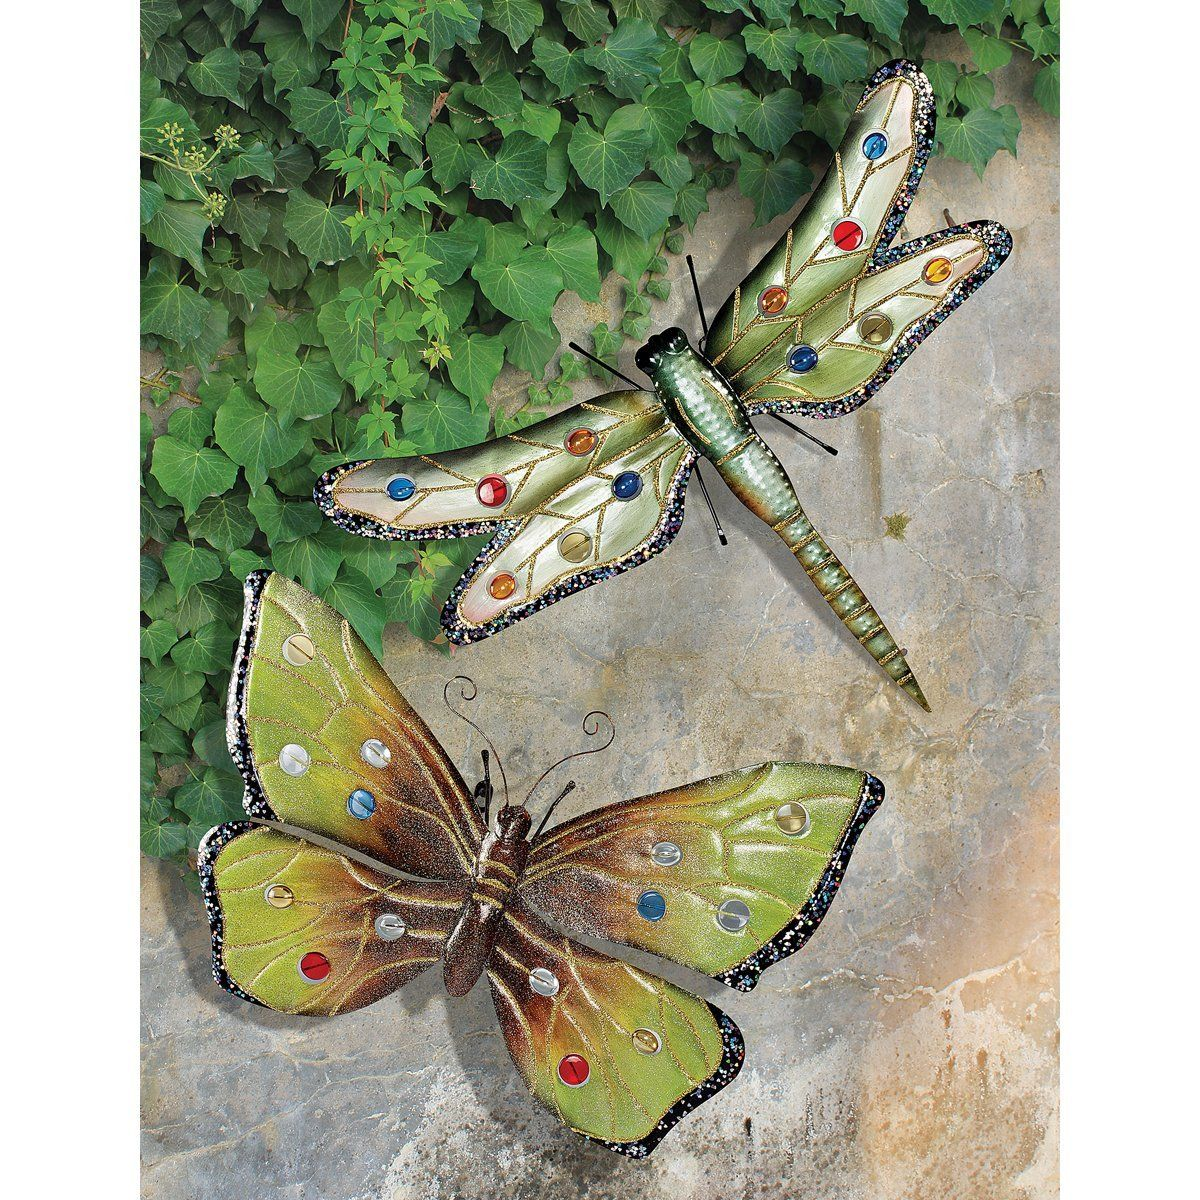 Amazon.com : Design Toscano Oversized Dragonfly and Butterfly Wall ...